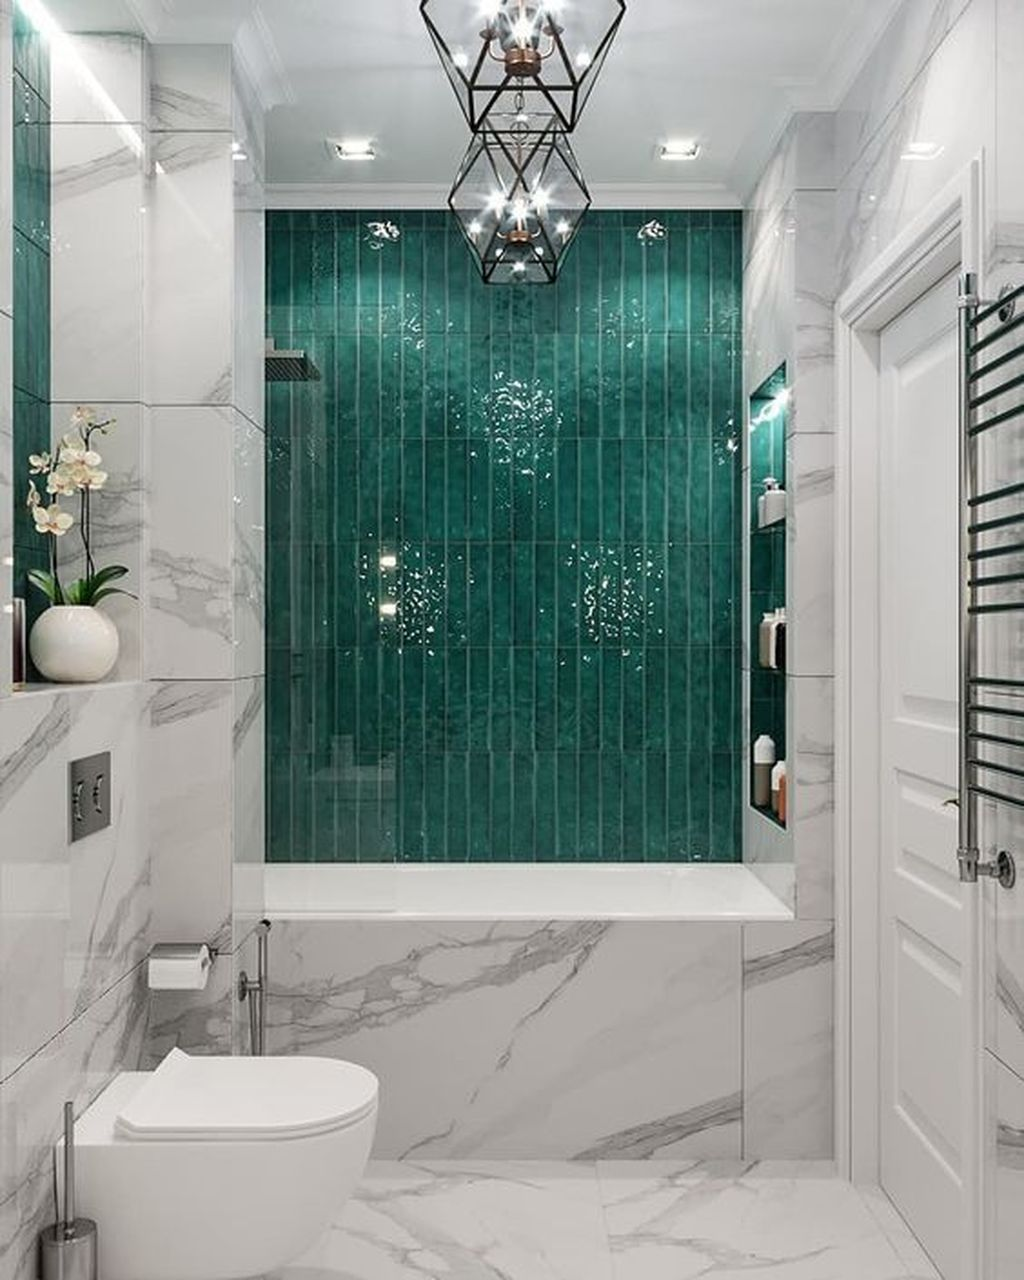 Luxury Bathroom Design And Decor Ideas 32